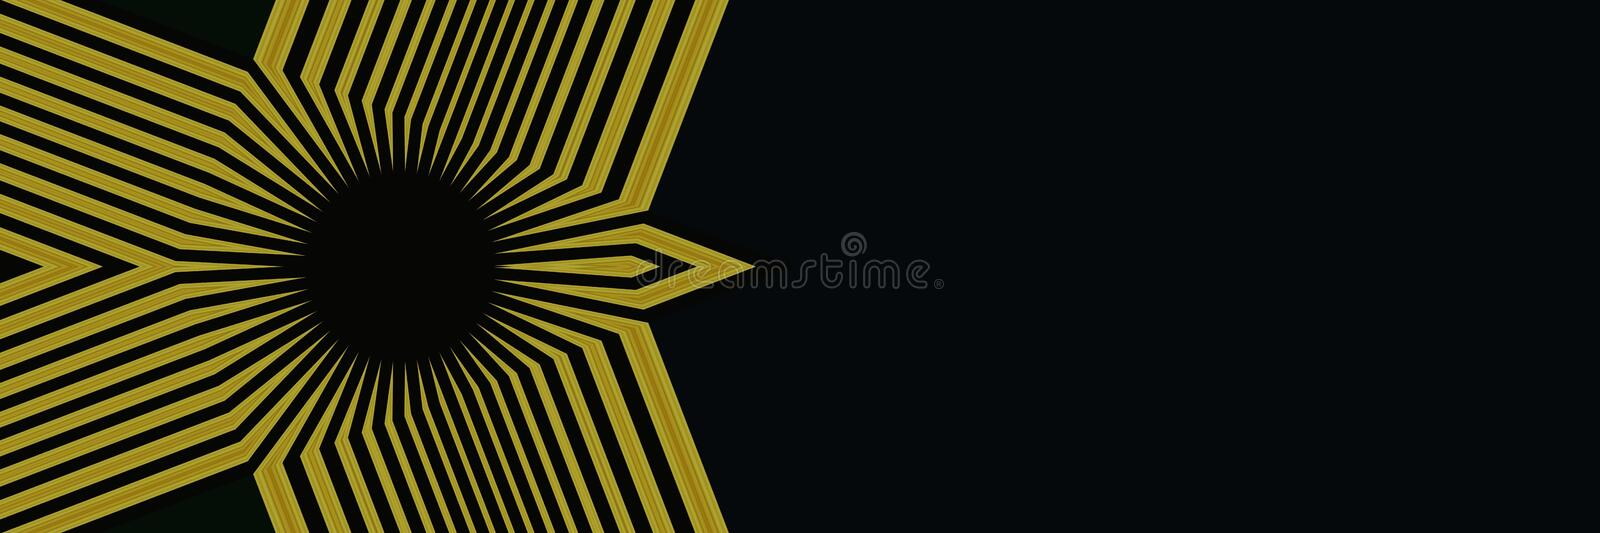 Black, Yellow, Black And White, Pattern royalty free stock images